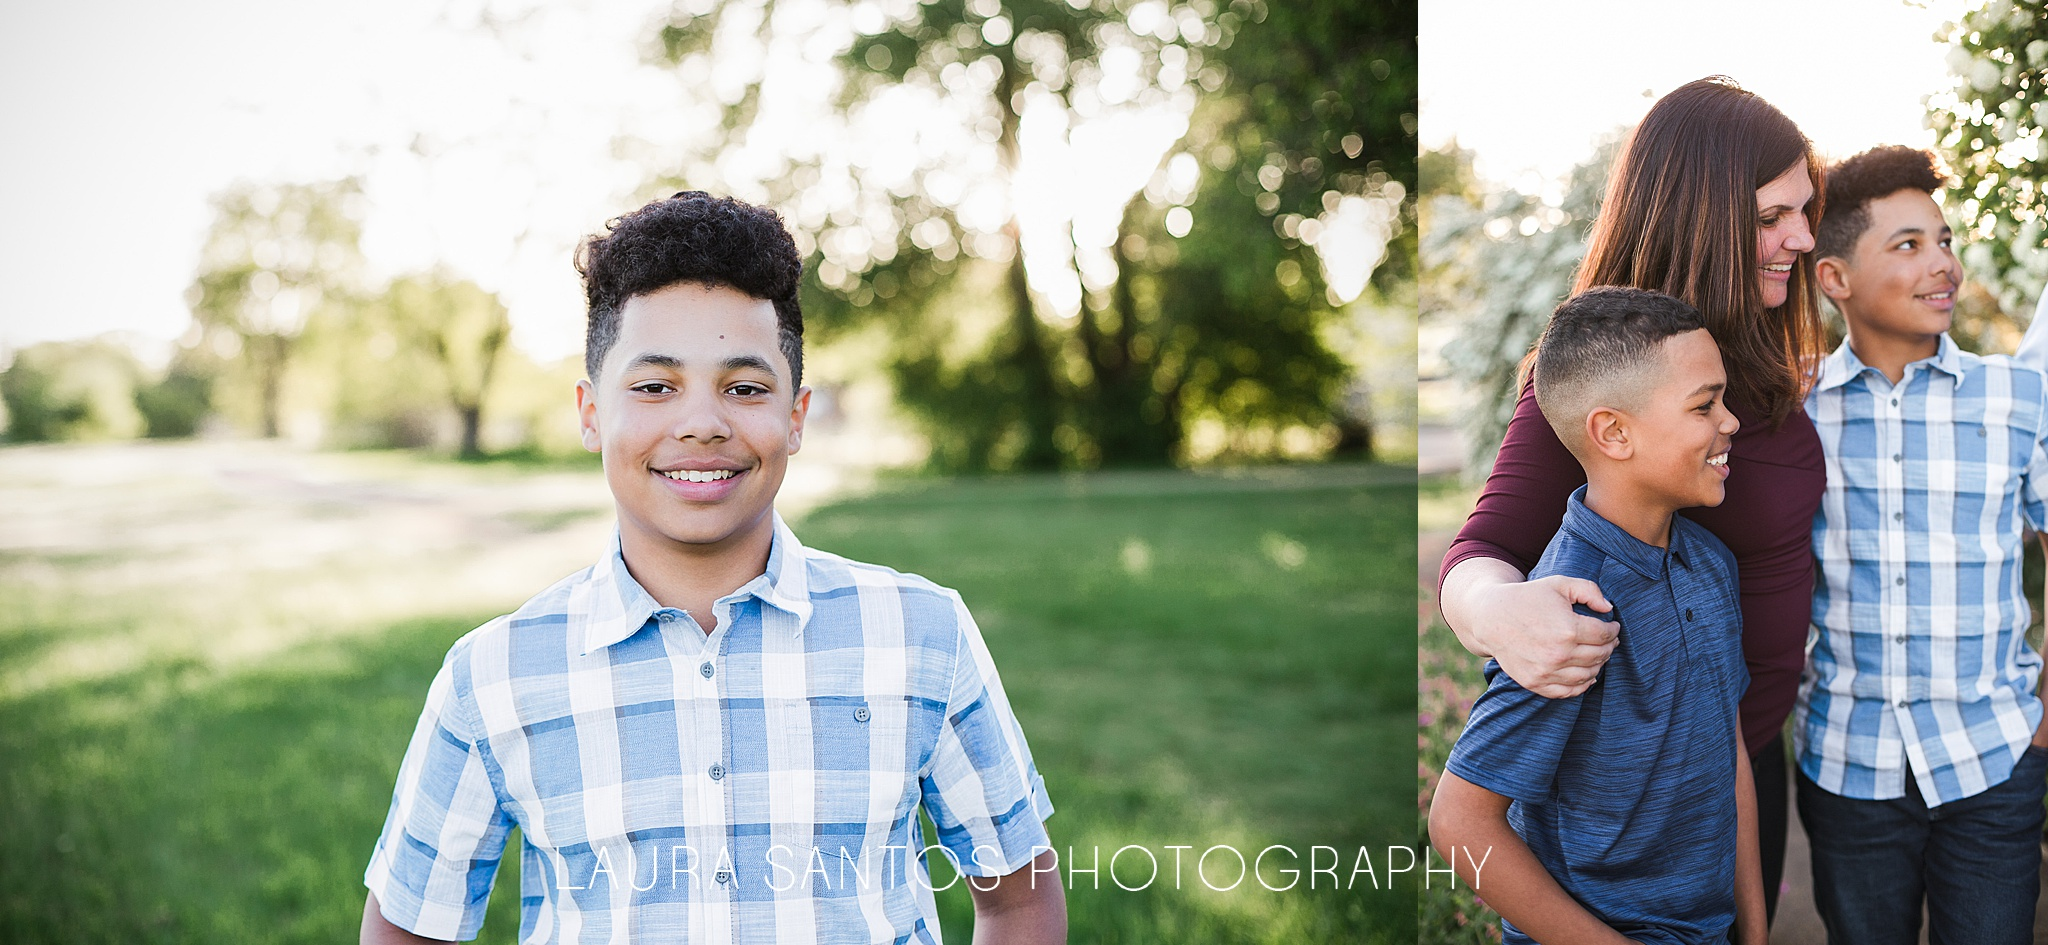 Laura Santos Photography Portland Oregon Family Photographer_0939.jpg